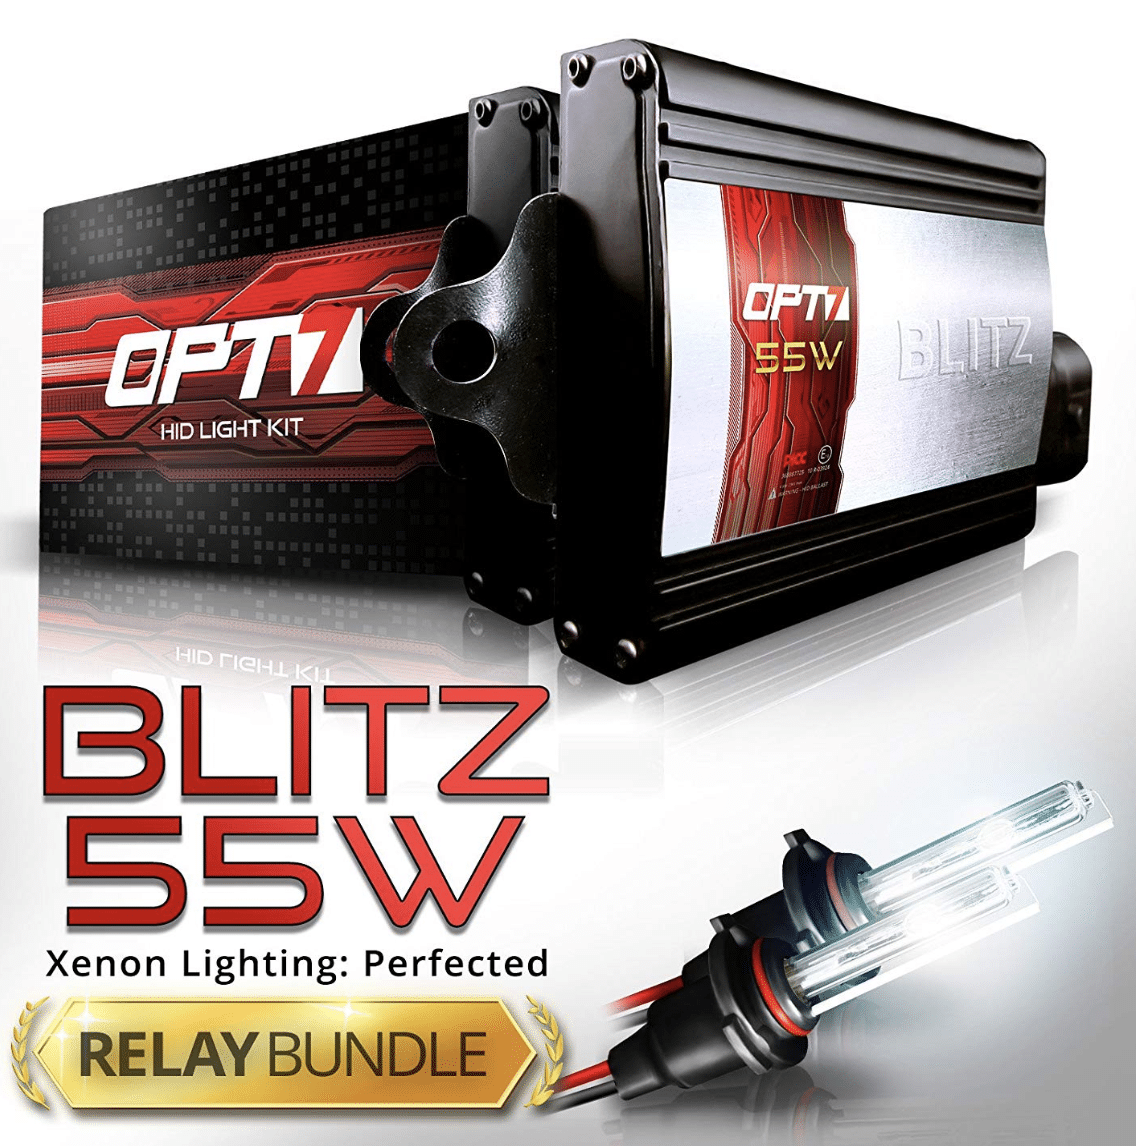 OPT7 Blitz 55w Hi Power 9006 HID Kit